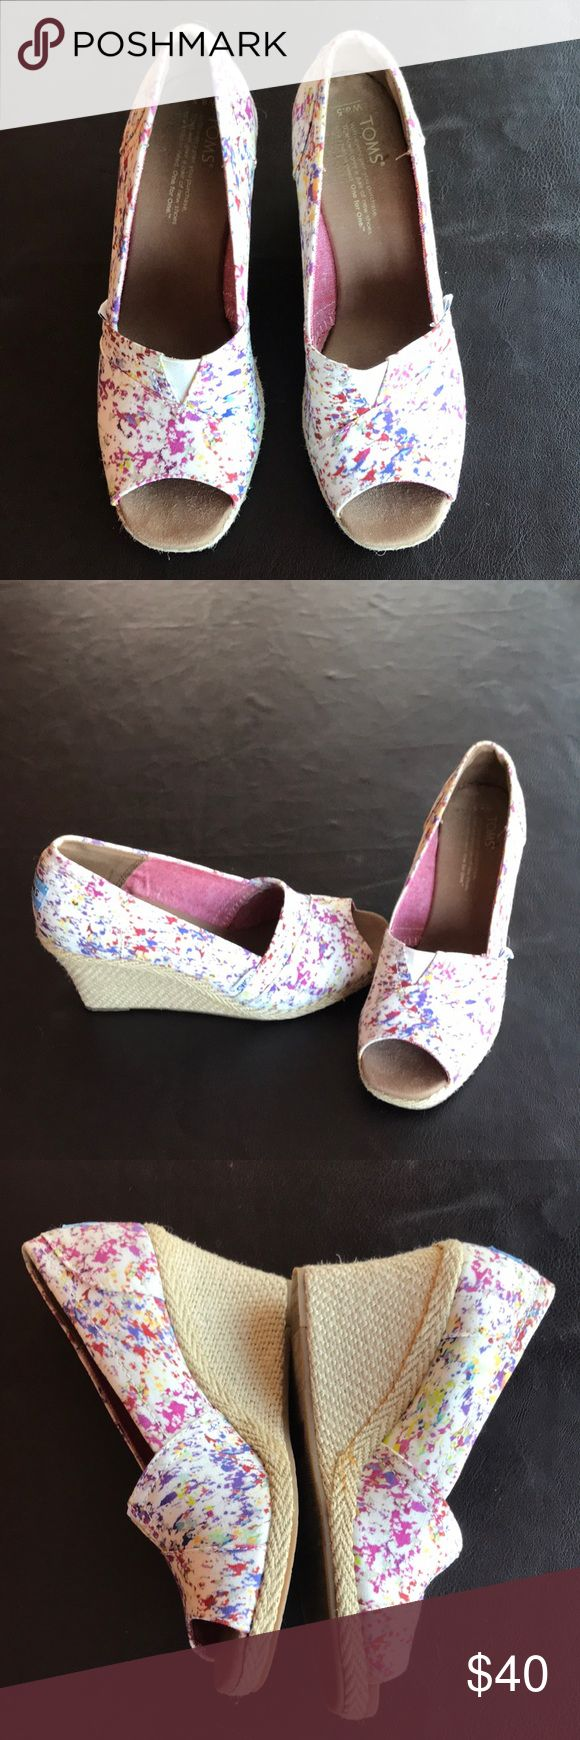 💕💕Women's toms shoes Women's Toms shoes-wedges worn once! In like new condition. Toms Shoes Wedges